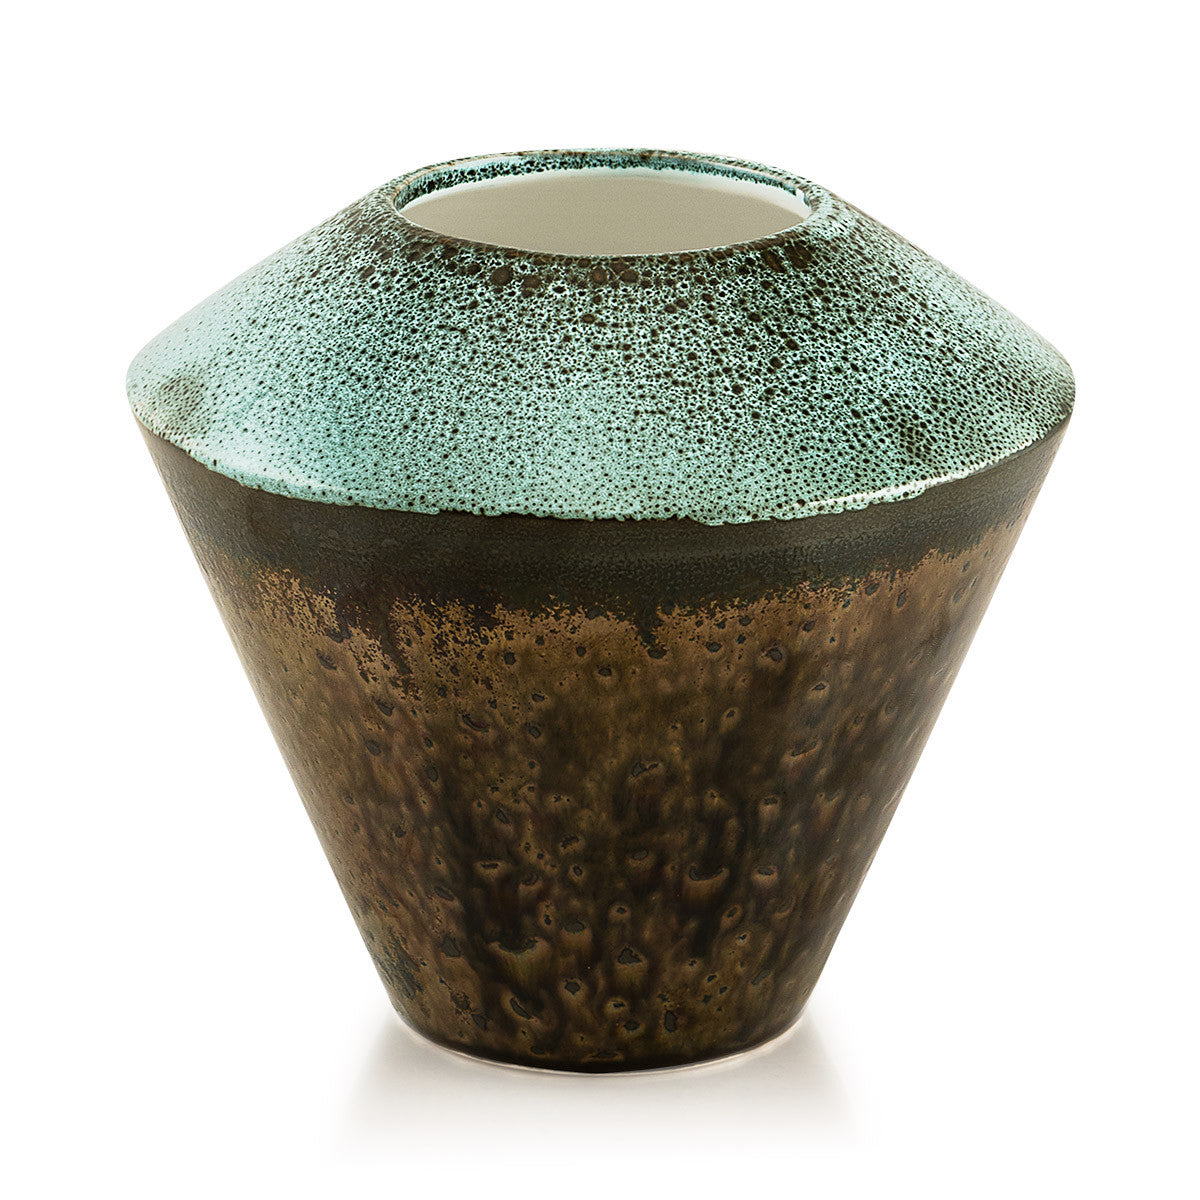 Ceramic small vase | Reactive glaze